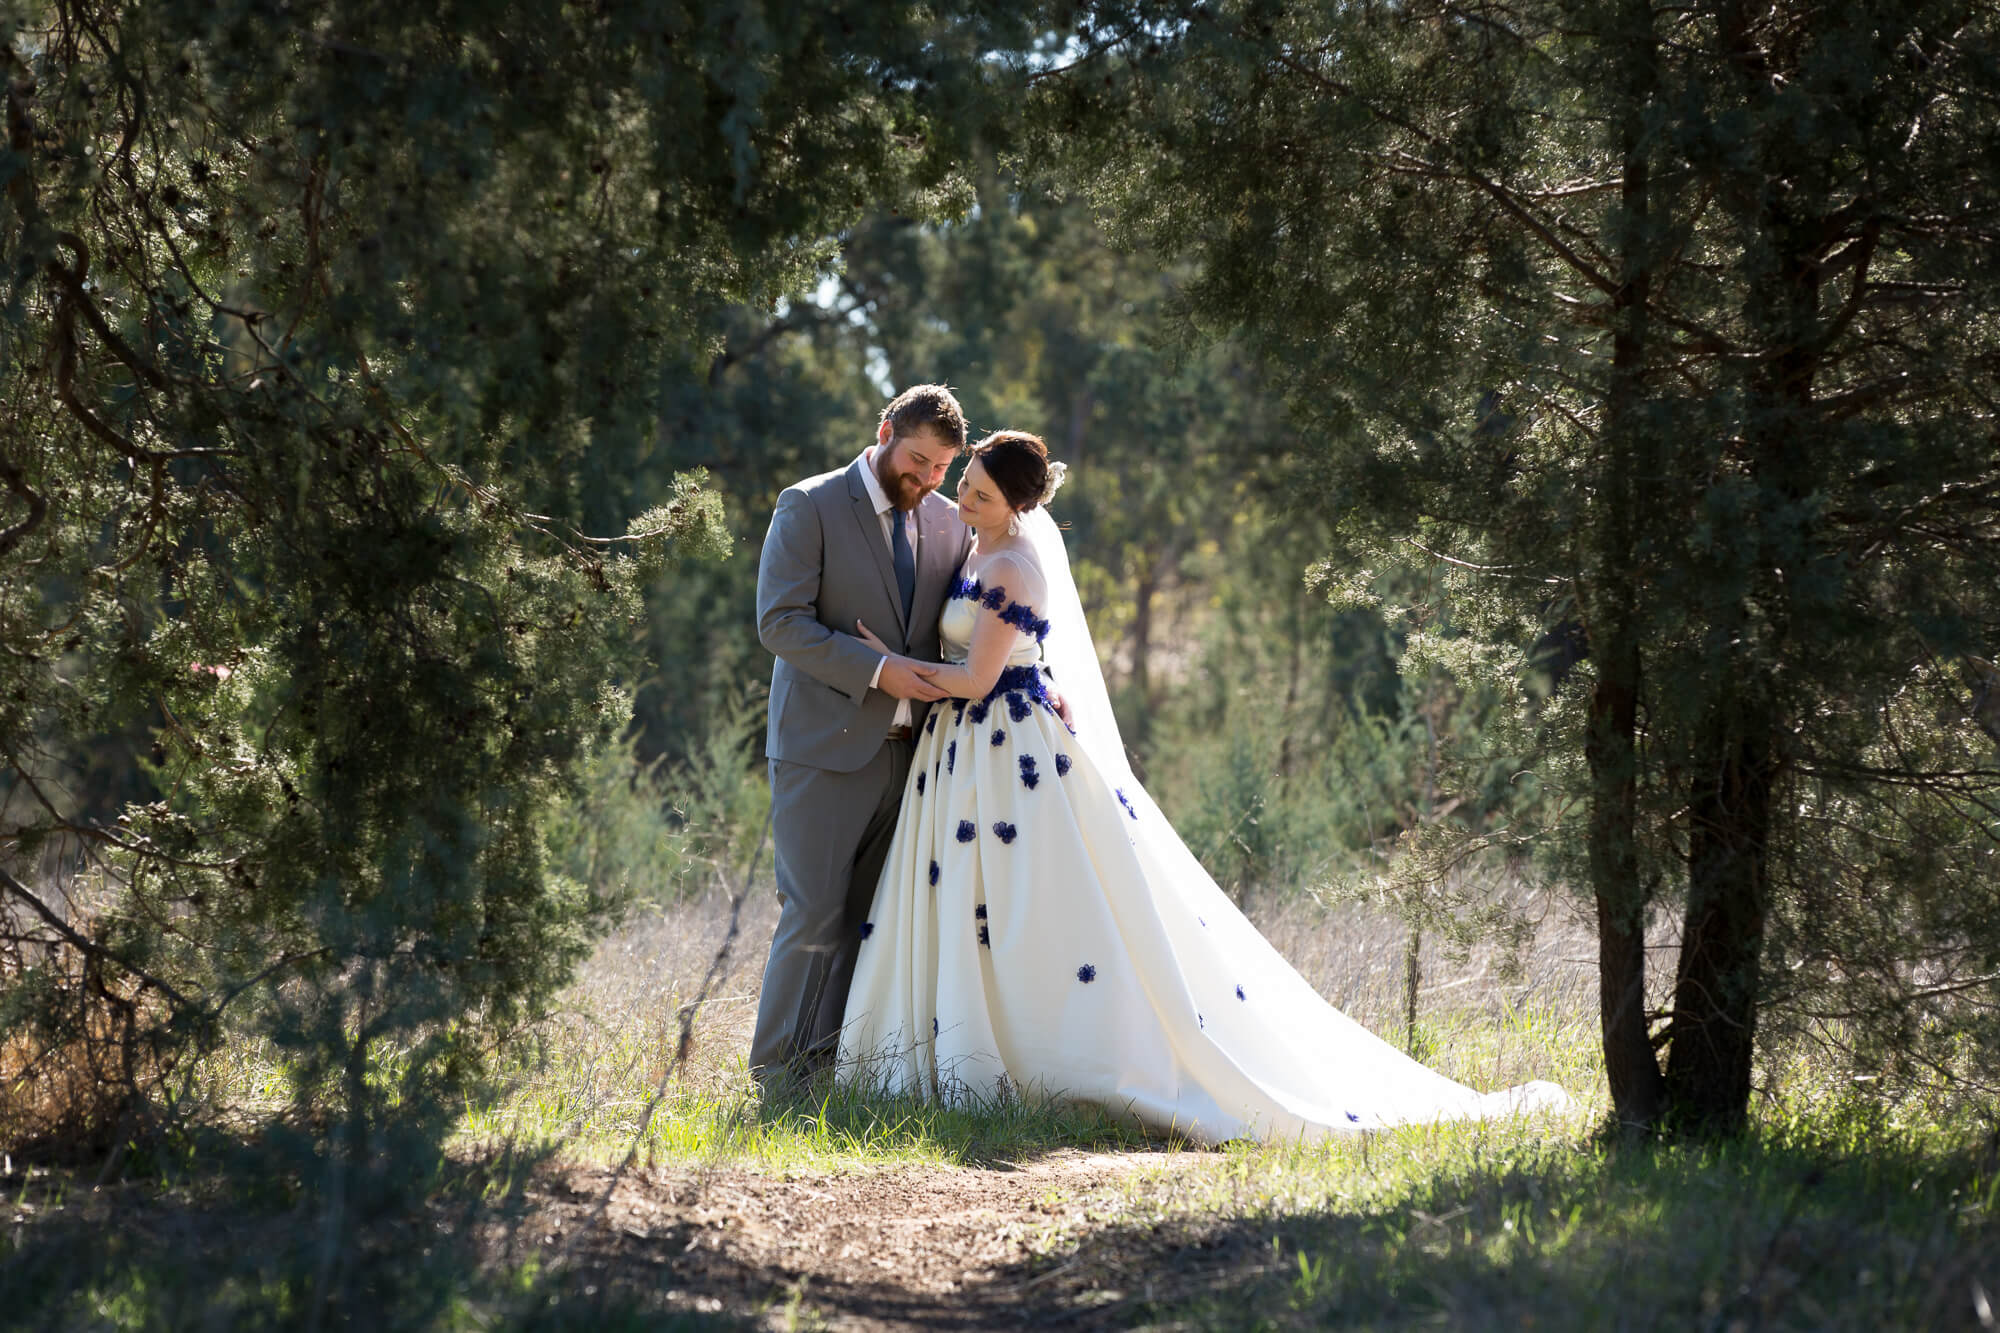 Bronte and David's Wedding Story